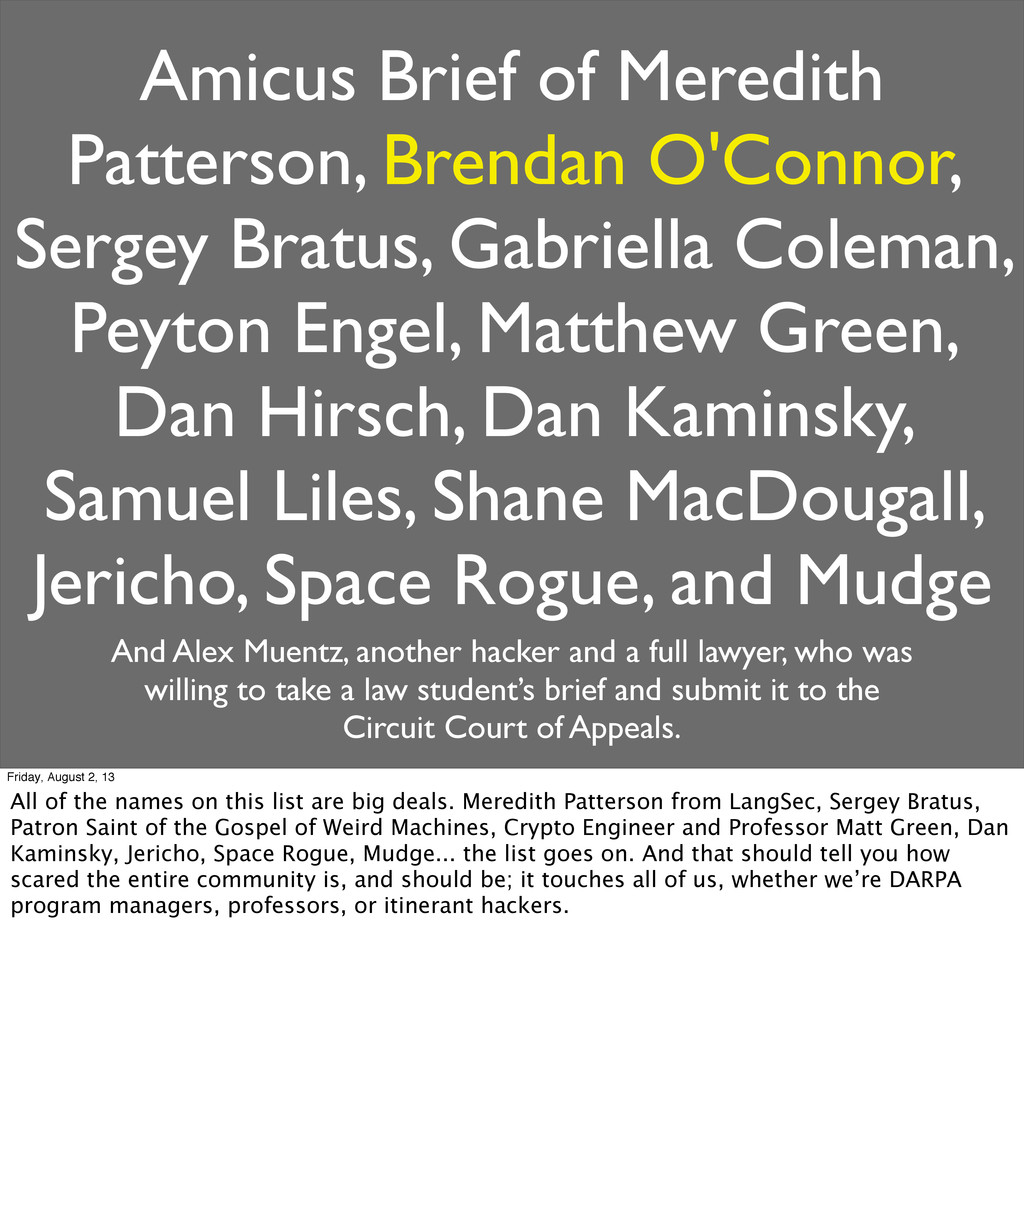 Amicus Brief of Meredith Patterson, Brendan O'C...